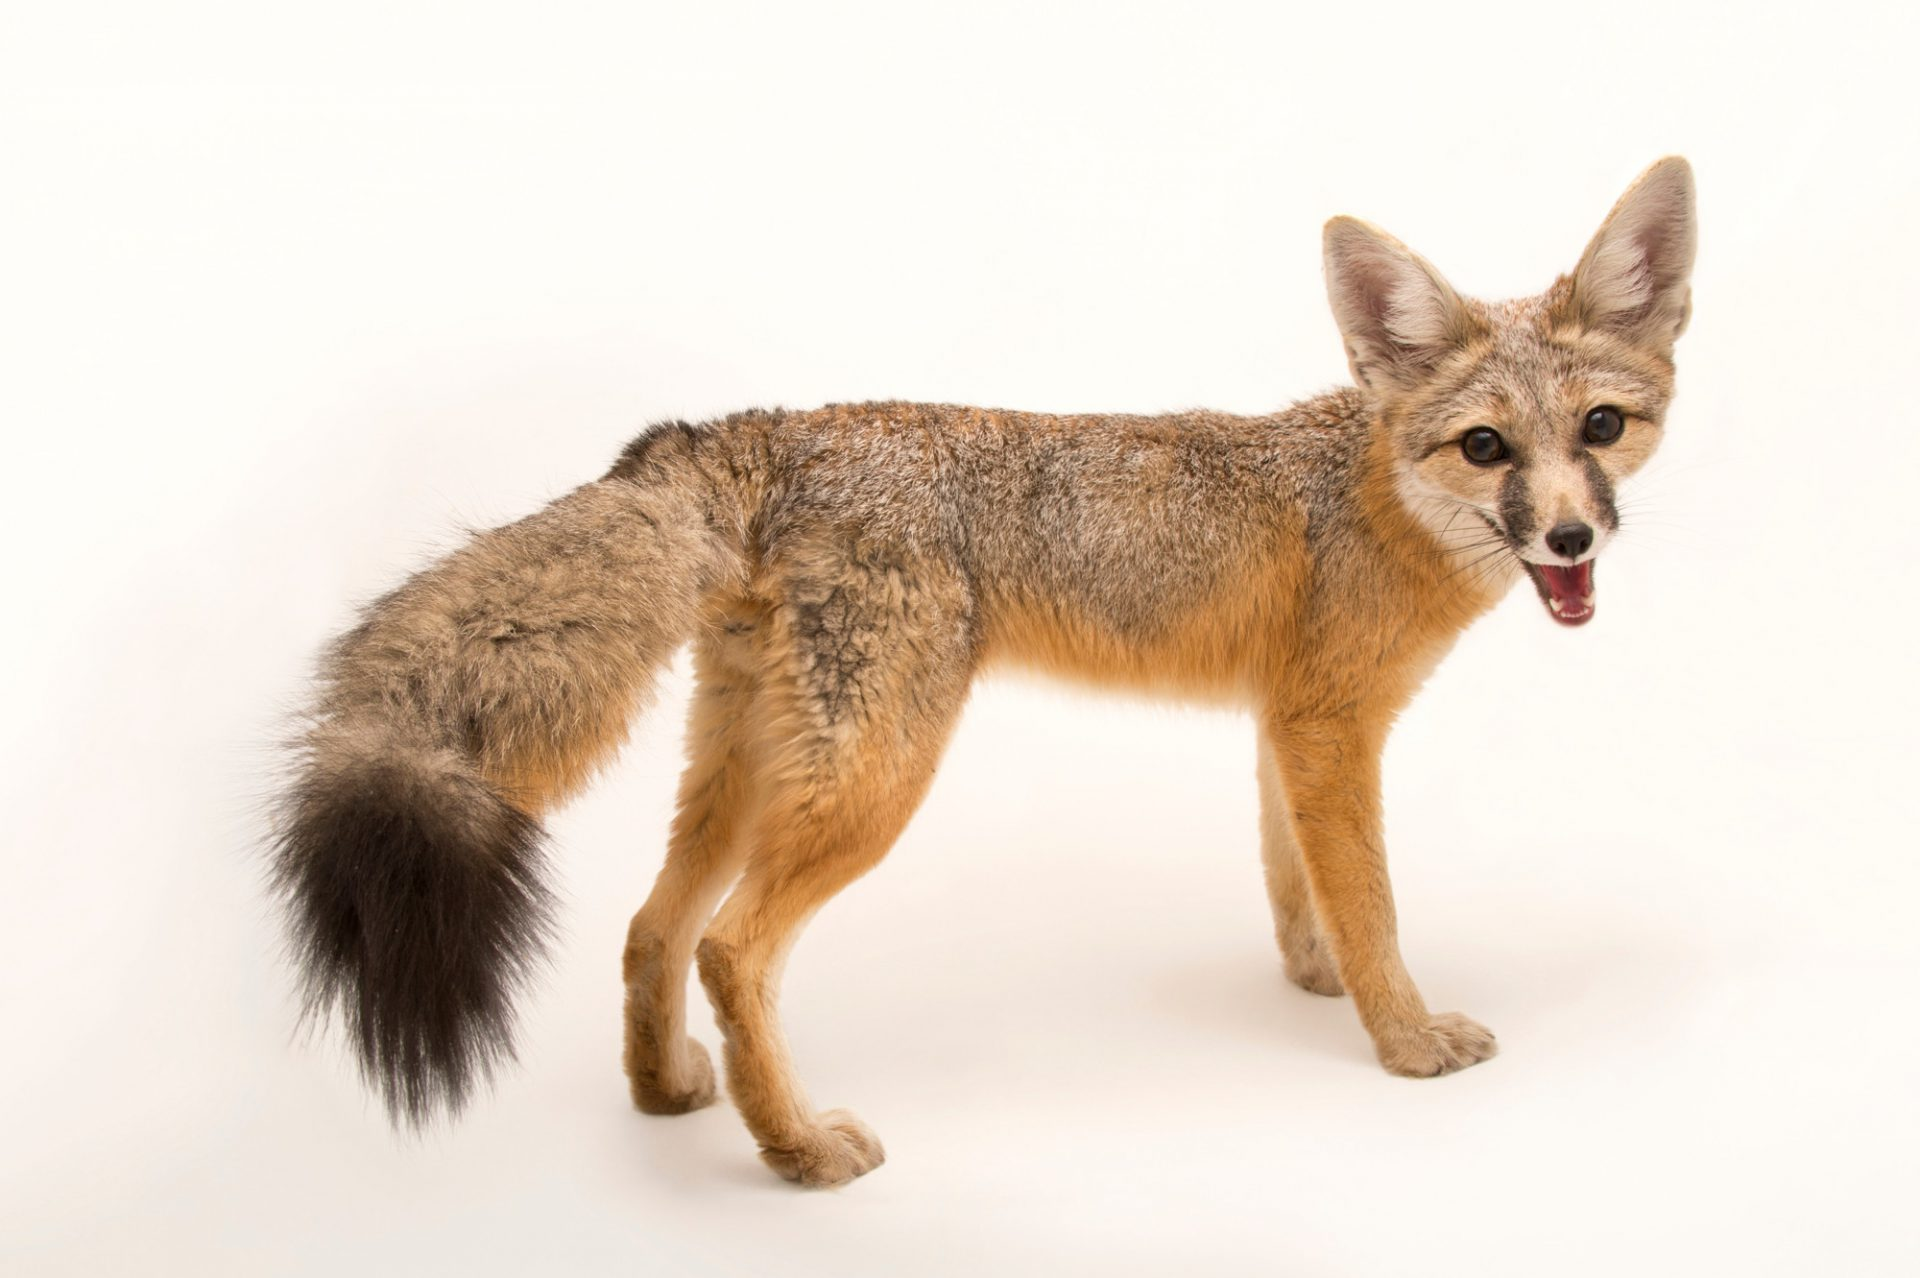 A kit fox (Vulpes macrotis) named Frankie at The Living Desert.